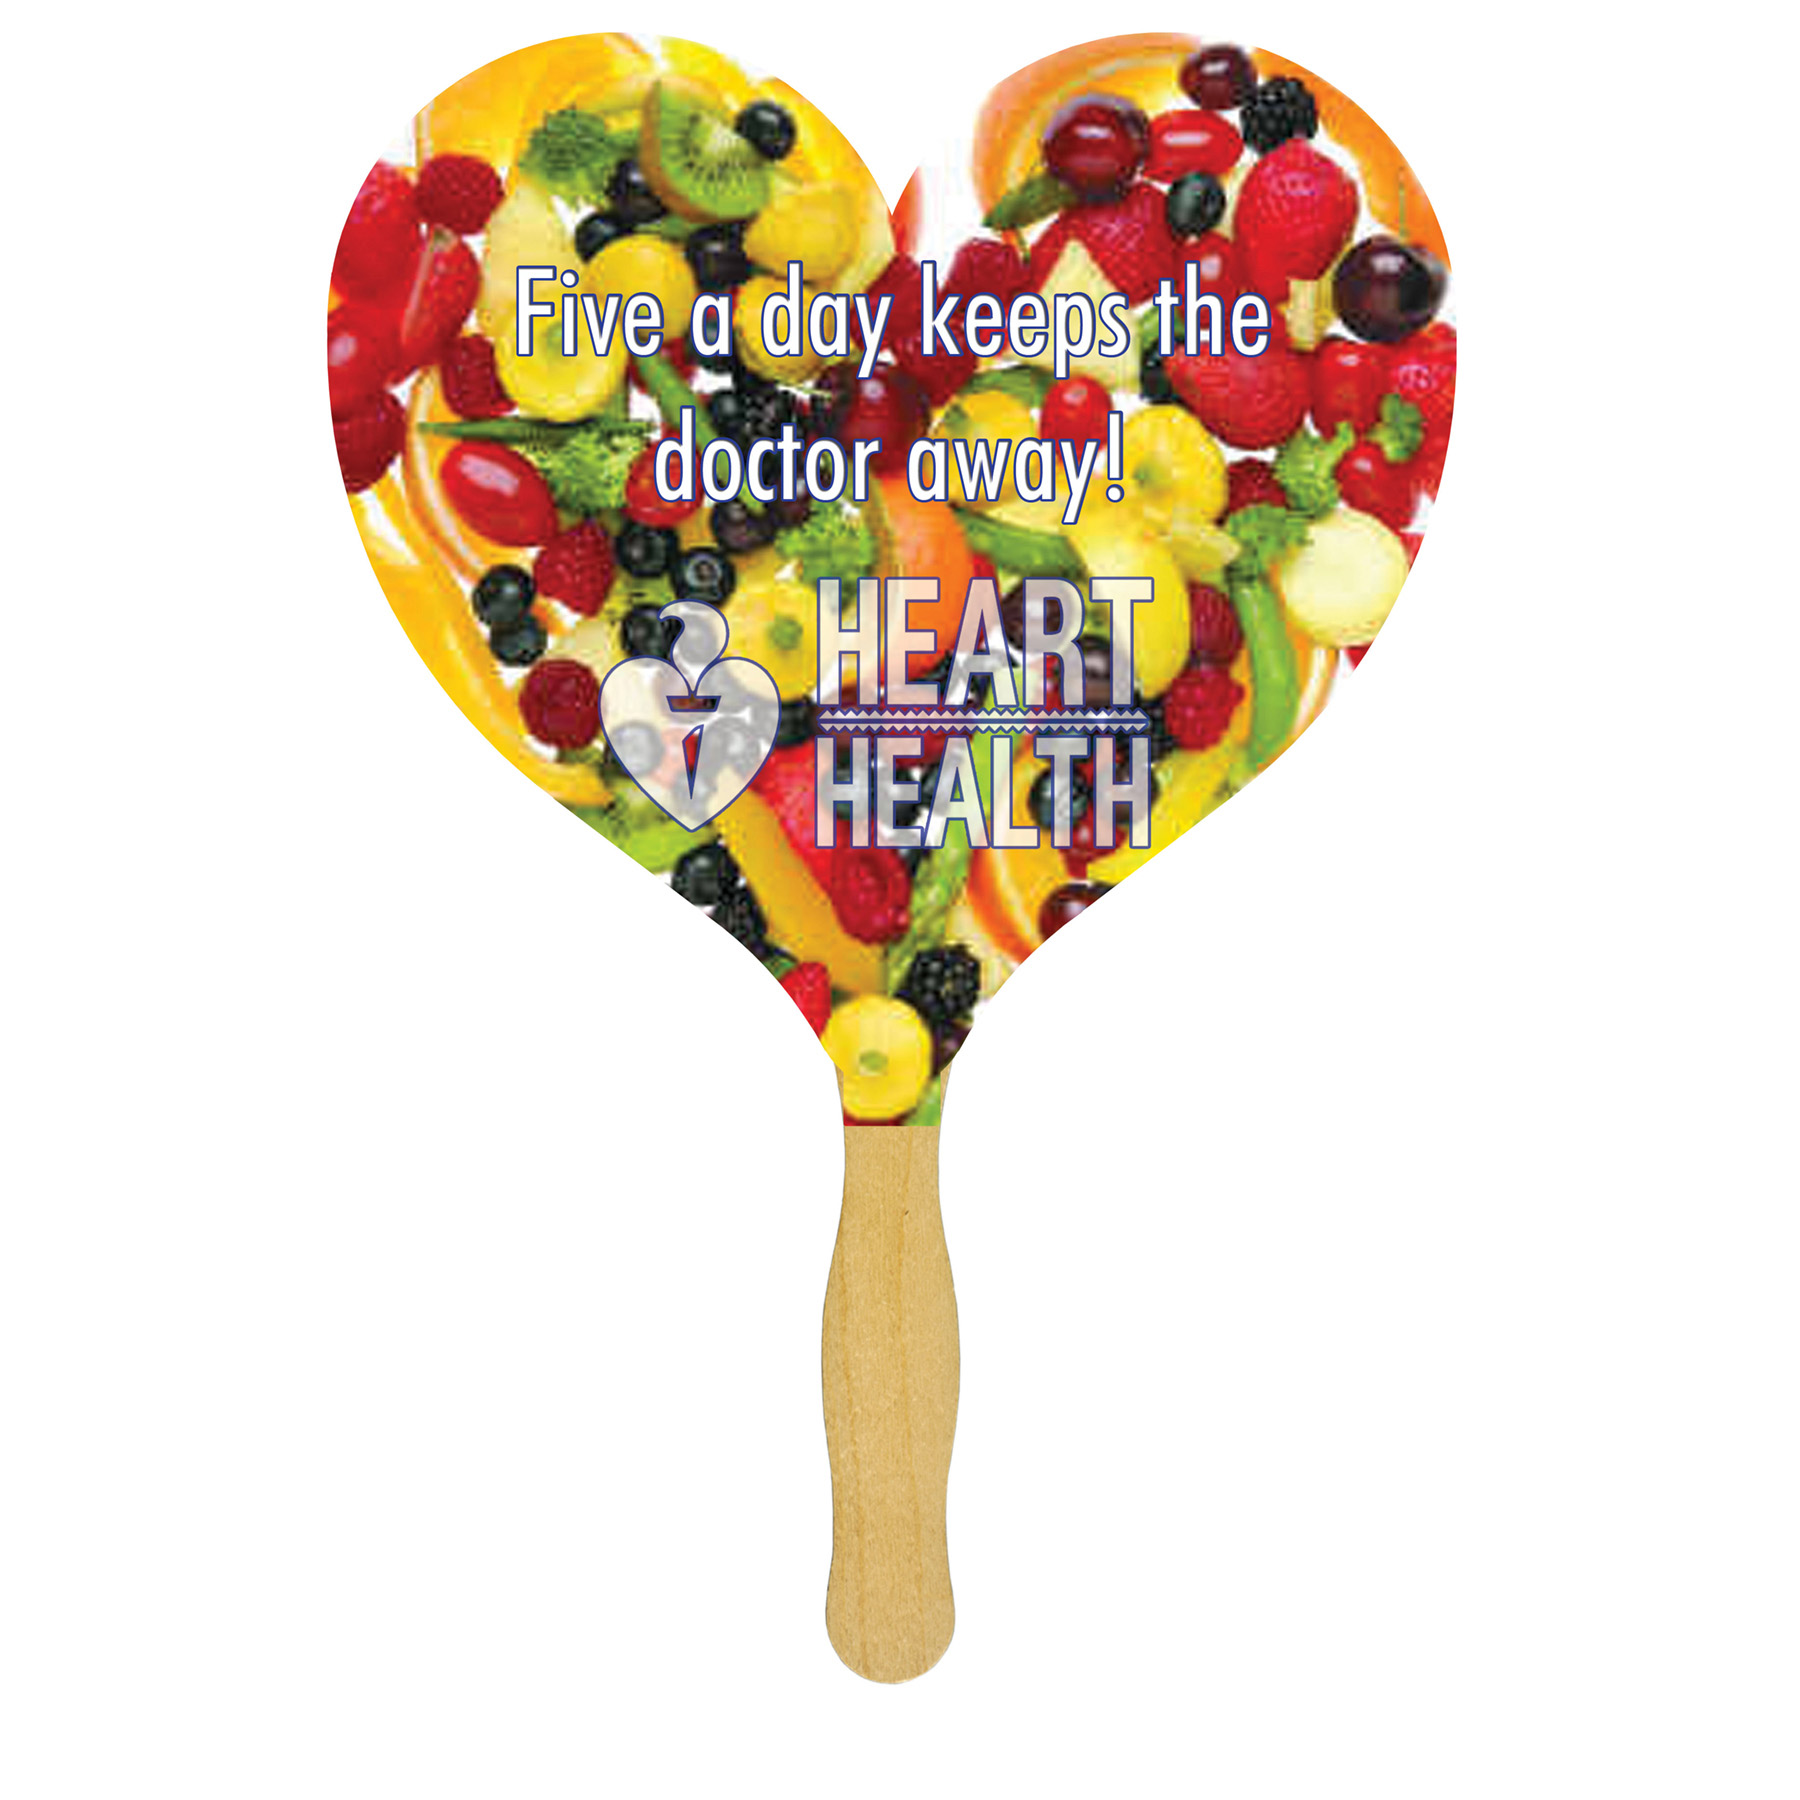 Heart Sandwiched Hand Fan (2 Side/Full Color Process), FW110-4-K, Full Colour Imprint